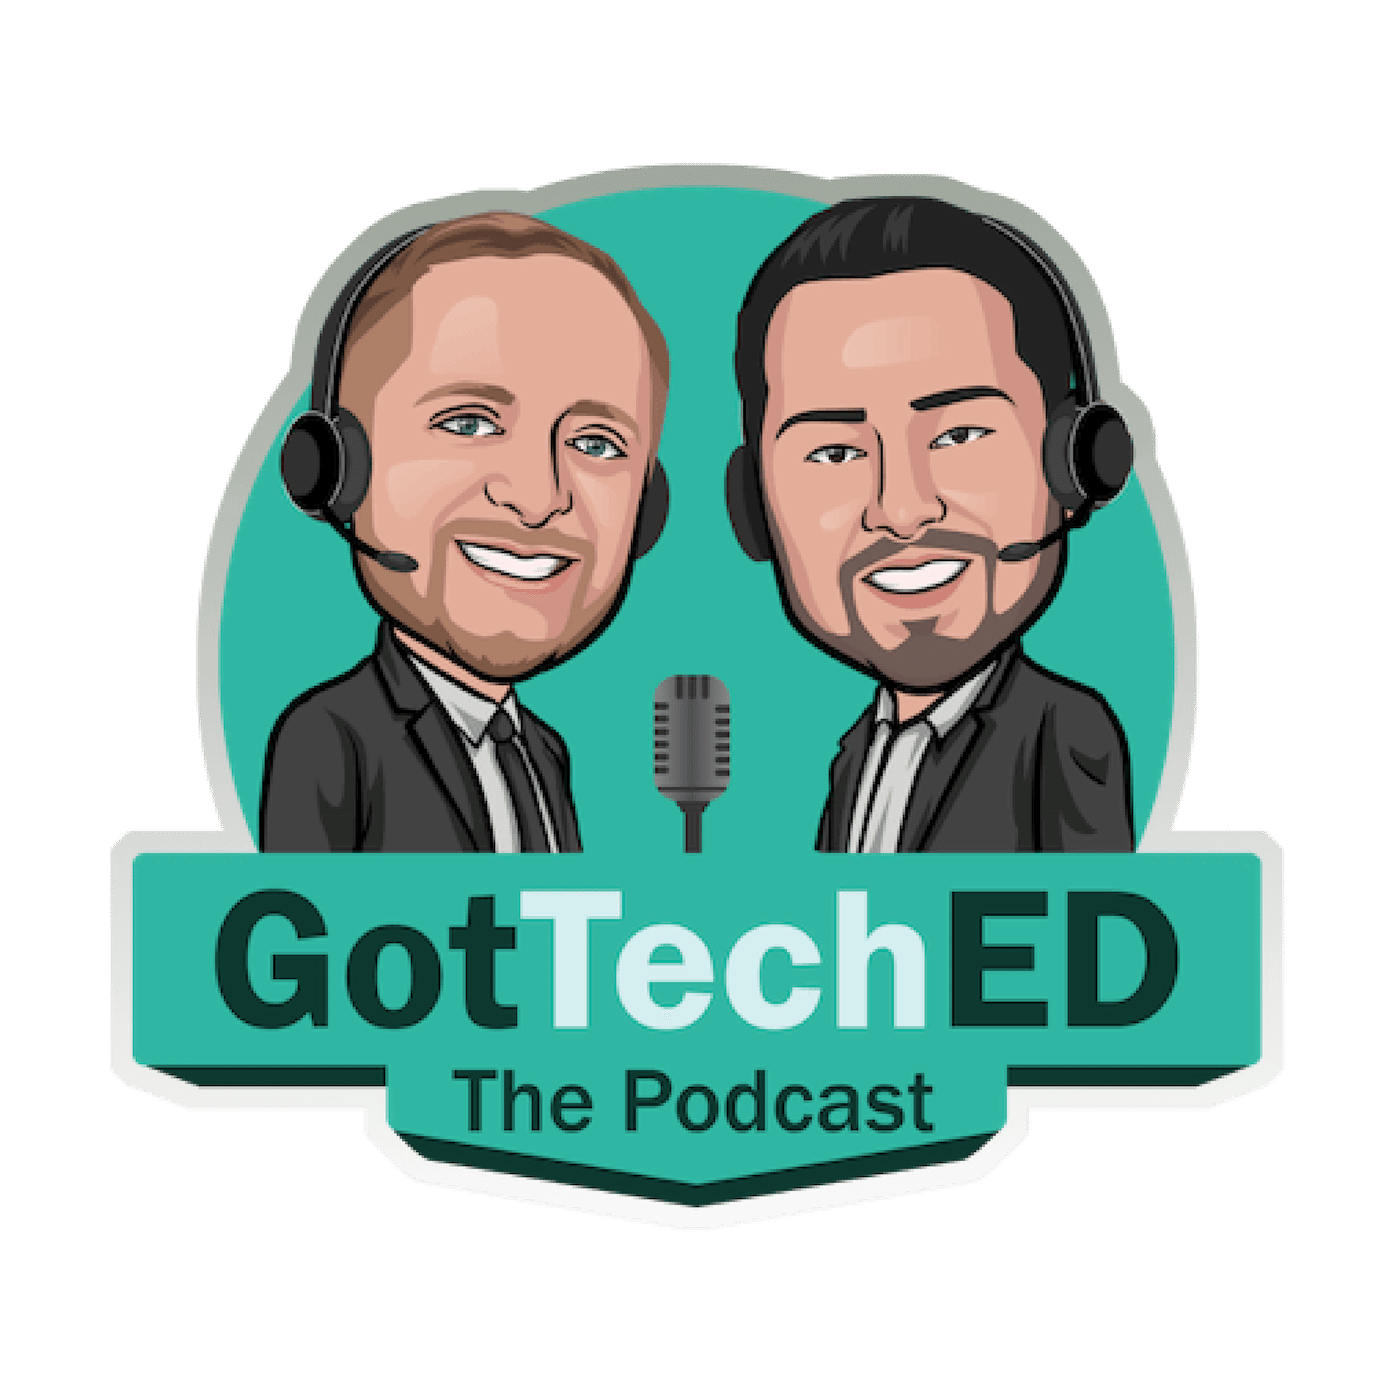 Artwork for podcast GotTechED the Podcast